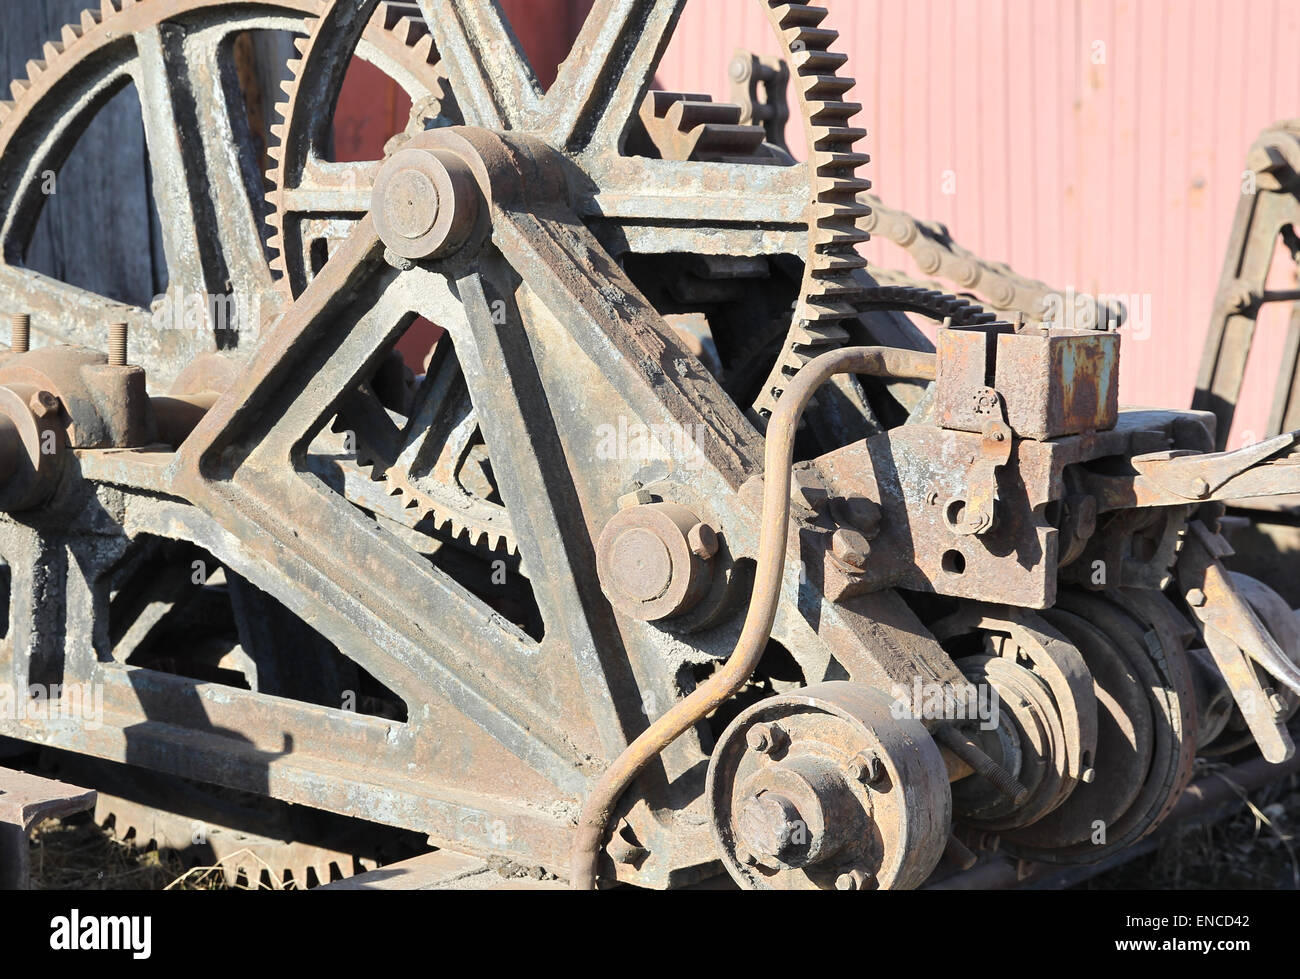 Old mechanism with large gear reducer - Stock Image